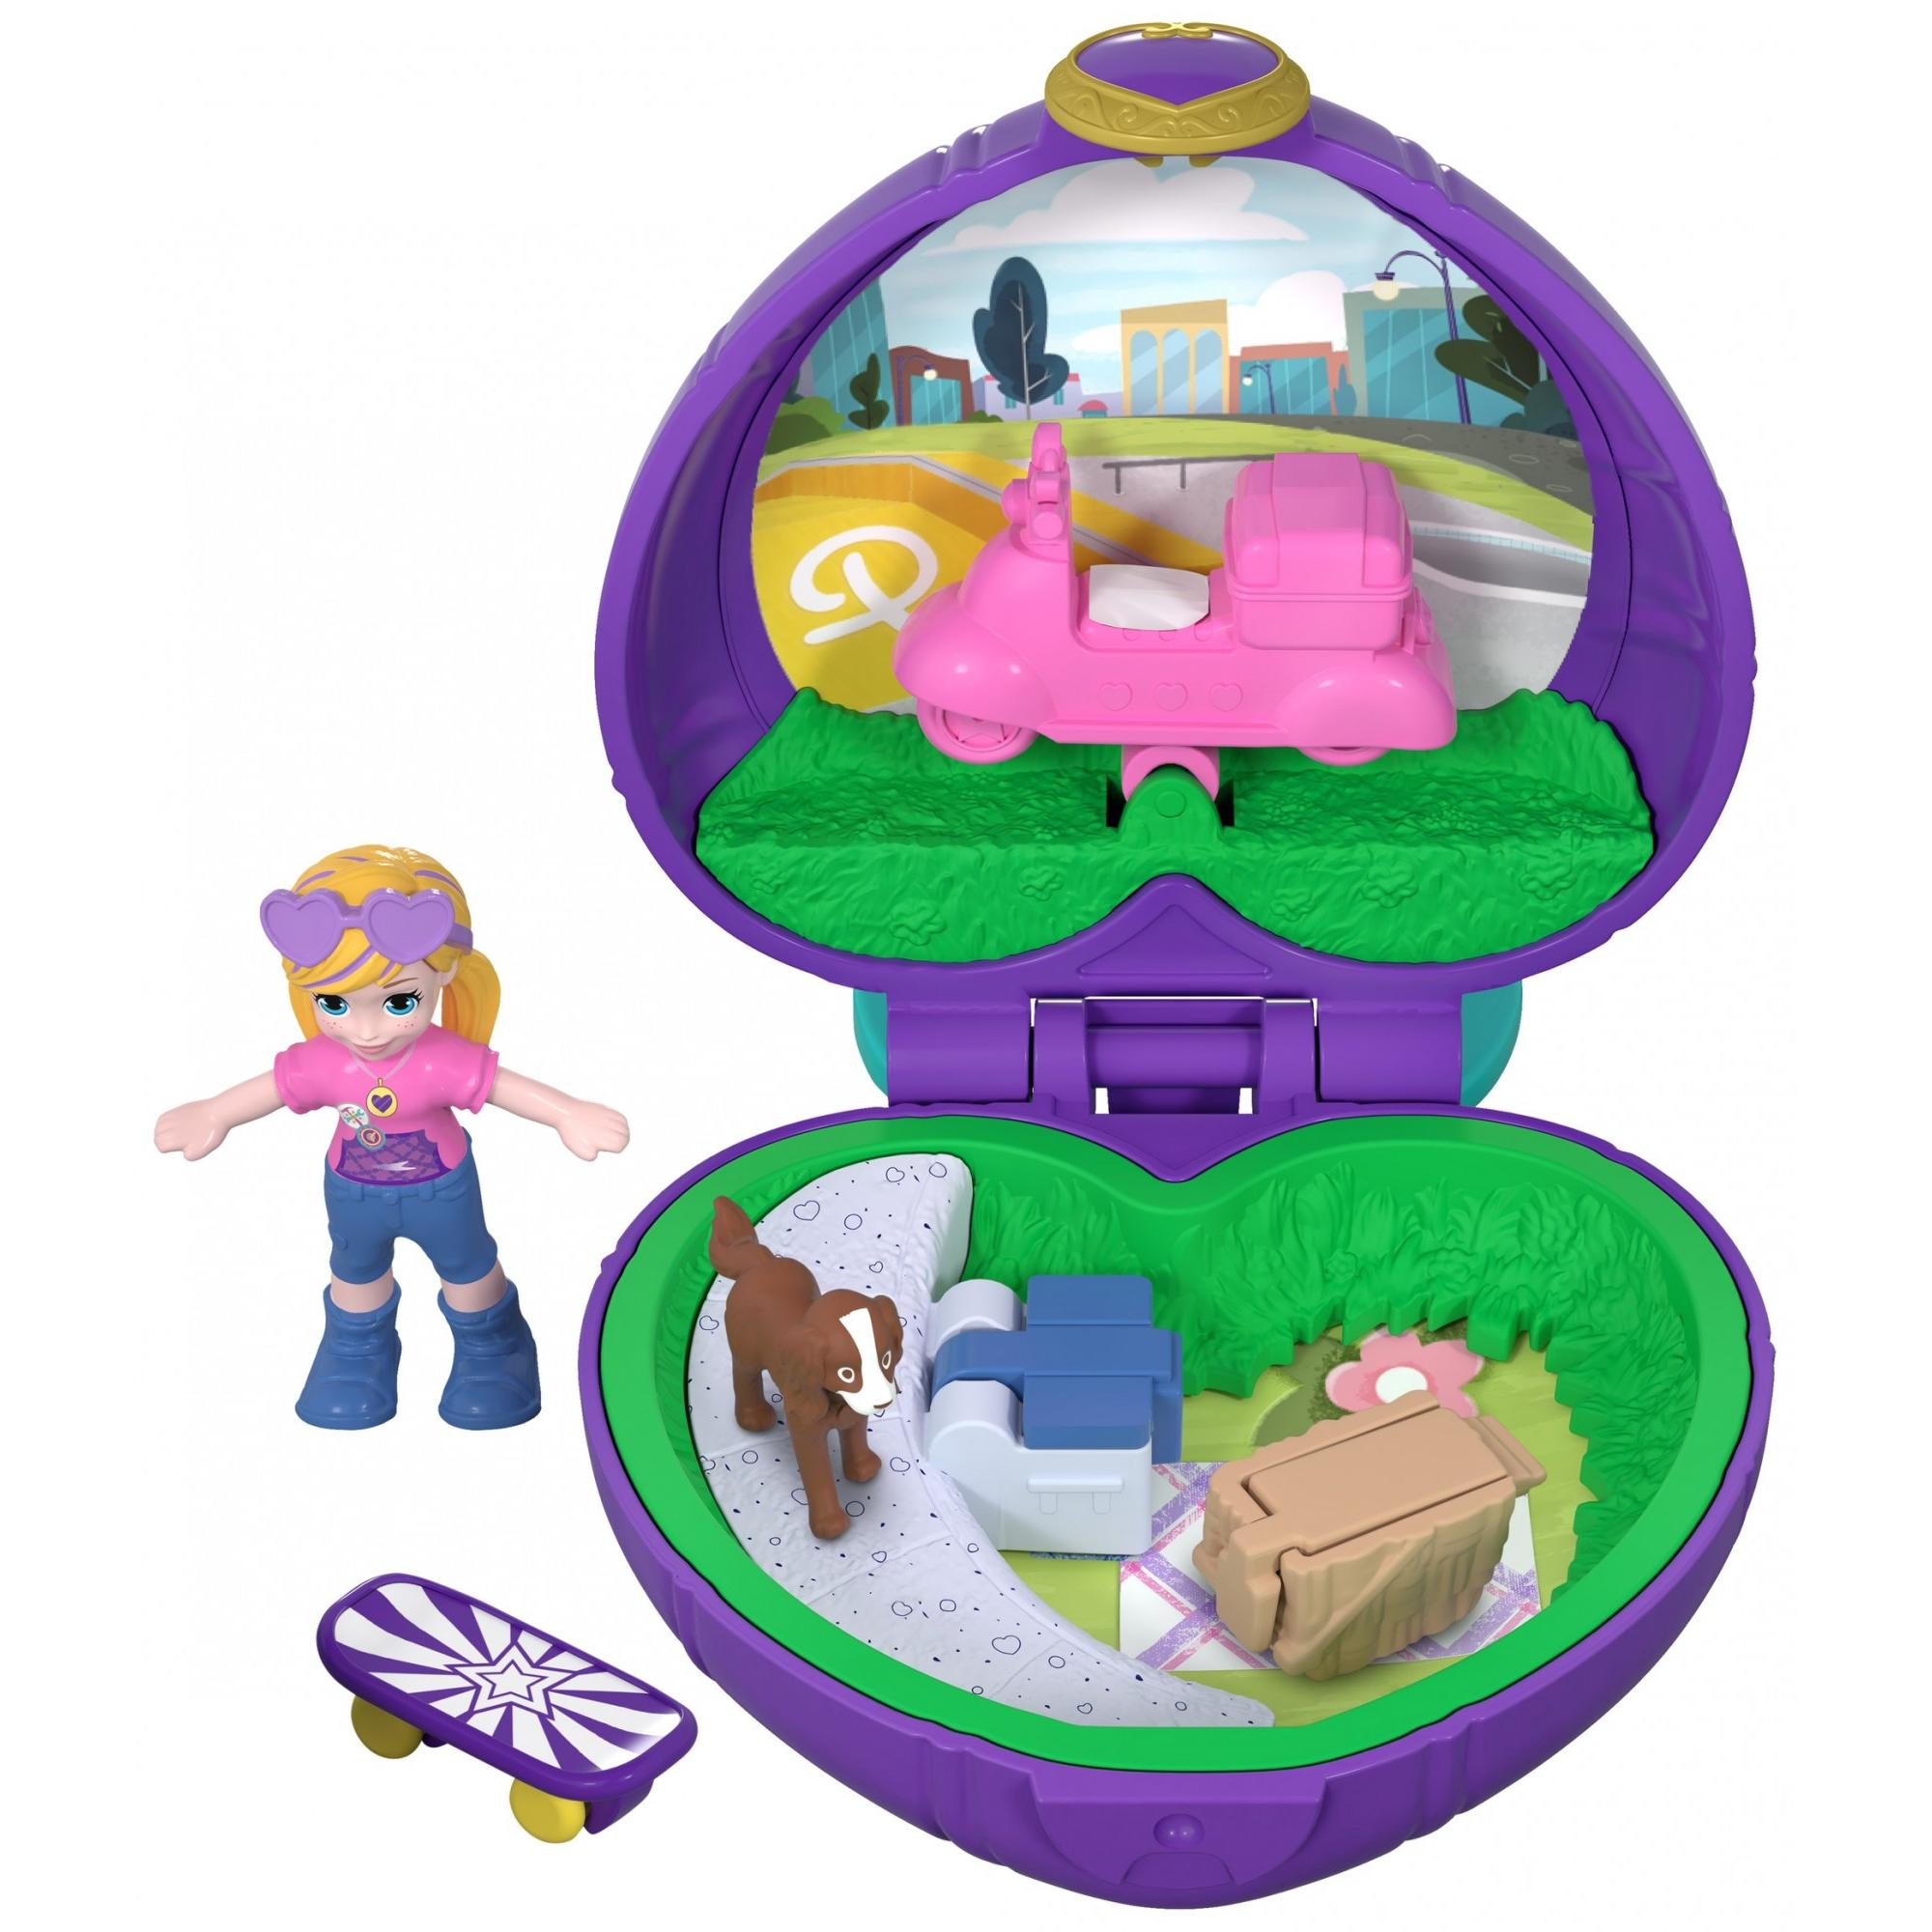 Polly Pocket Tiny Pocket Places Picnic Portable Compact